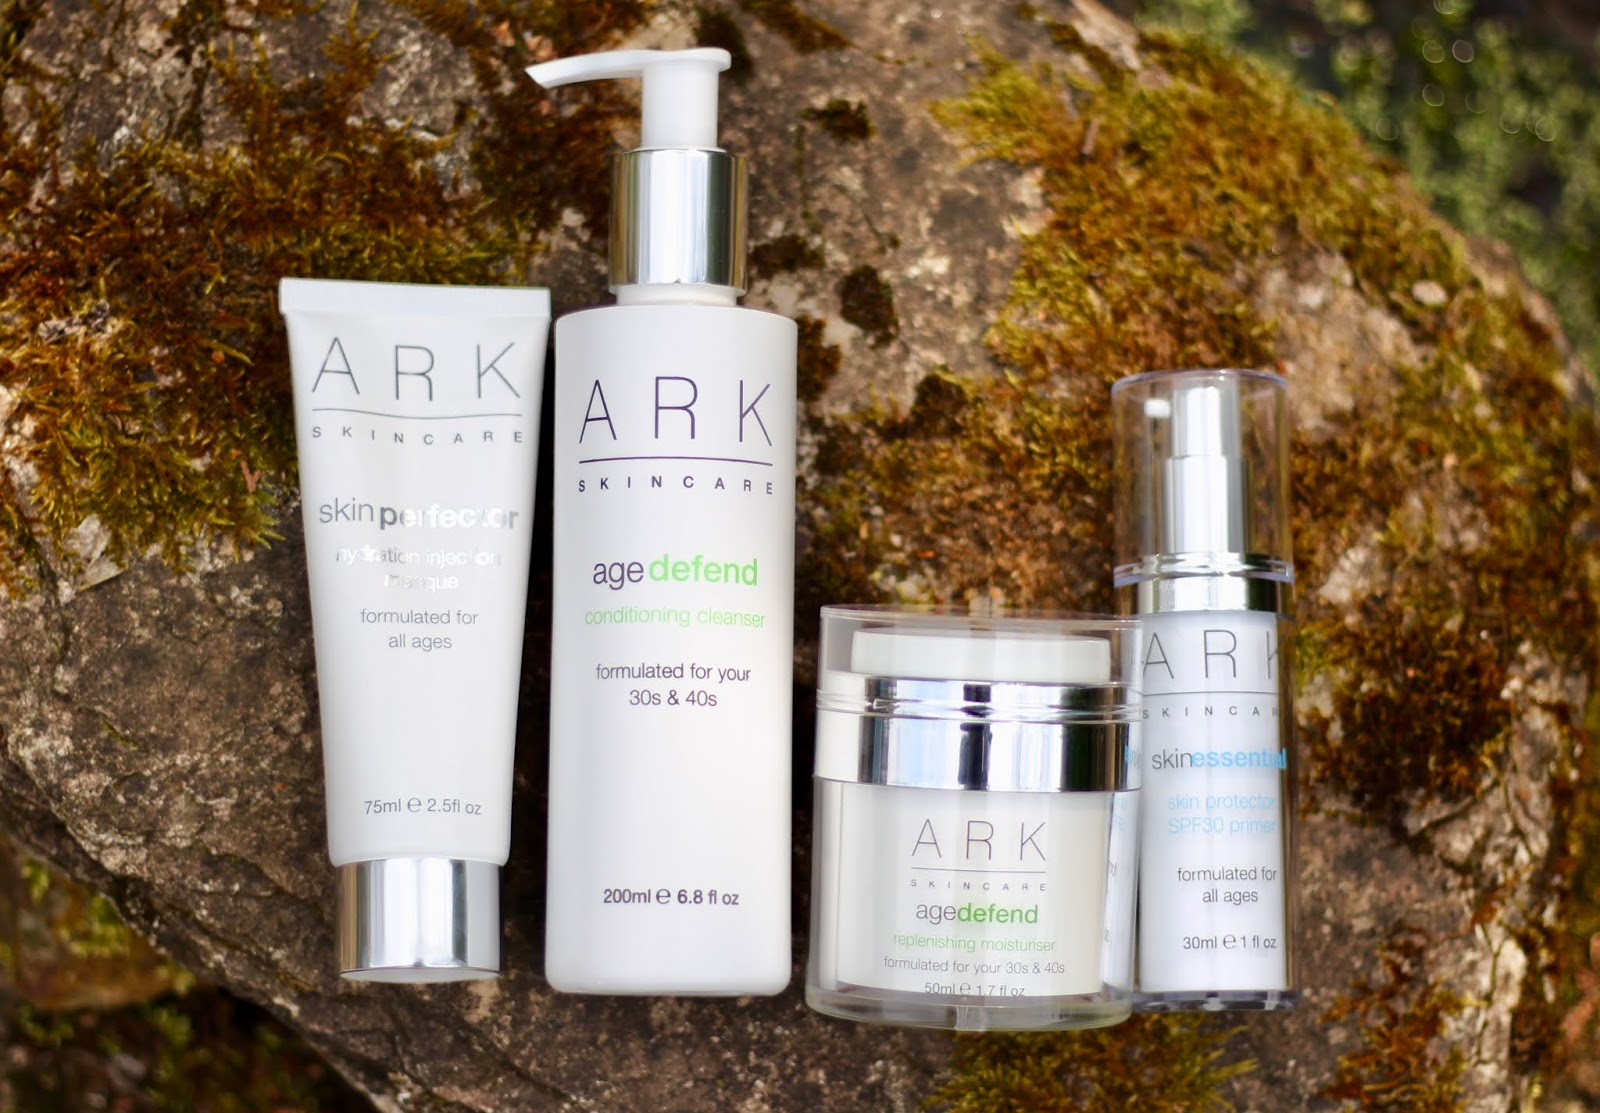 ARK skincare | Honest Beauty Review